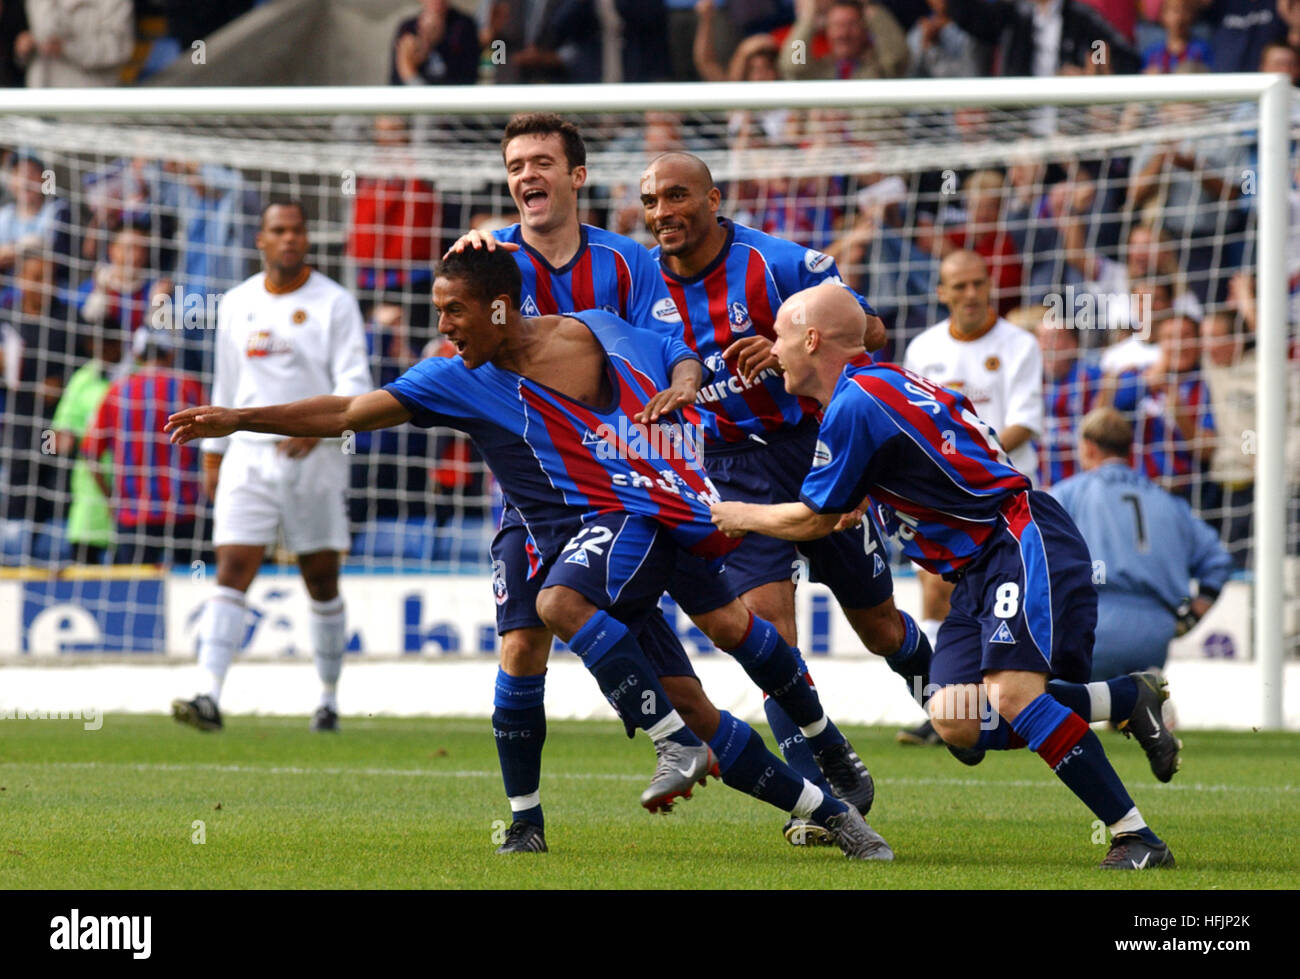 Wayne Routledge celebrates after scoring a goal on debut for Crystal Palace 2002 - Stock Image